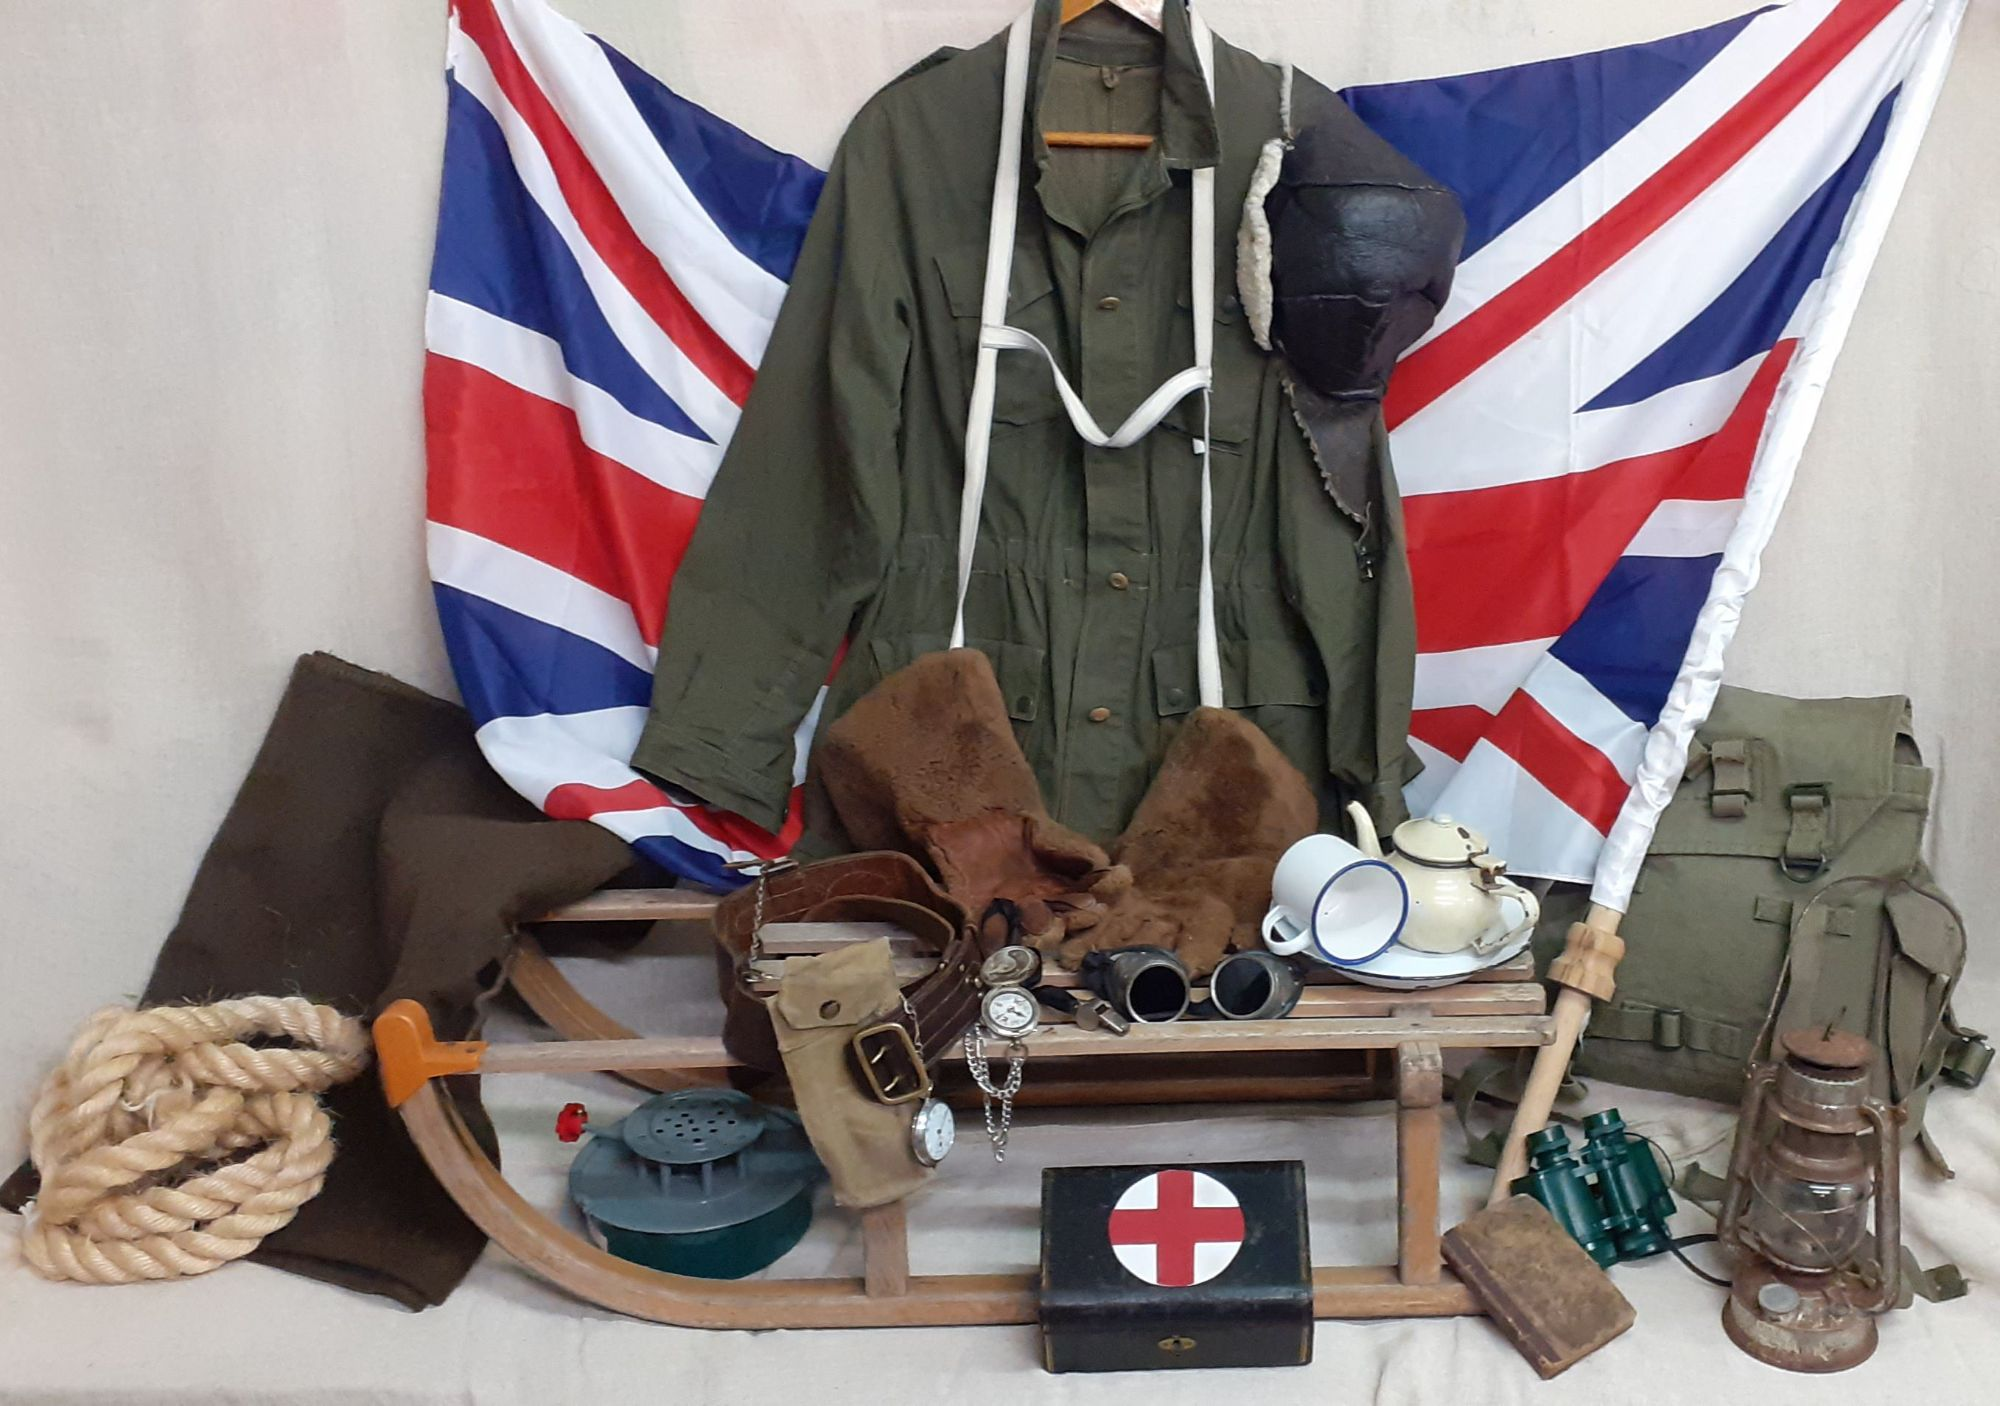 1910s antarctic clothing and artefacts based on the expedition of Enrnest Shackleton